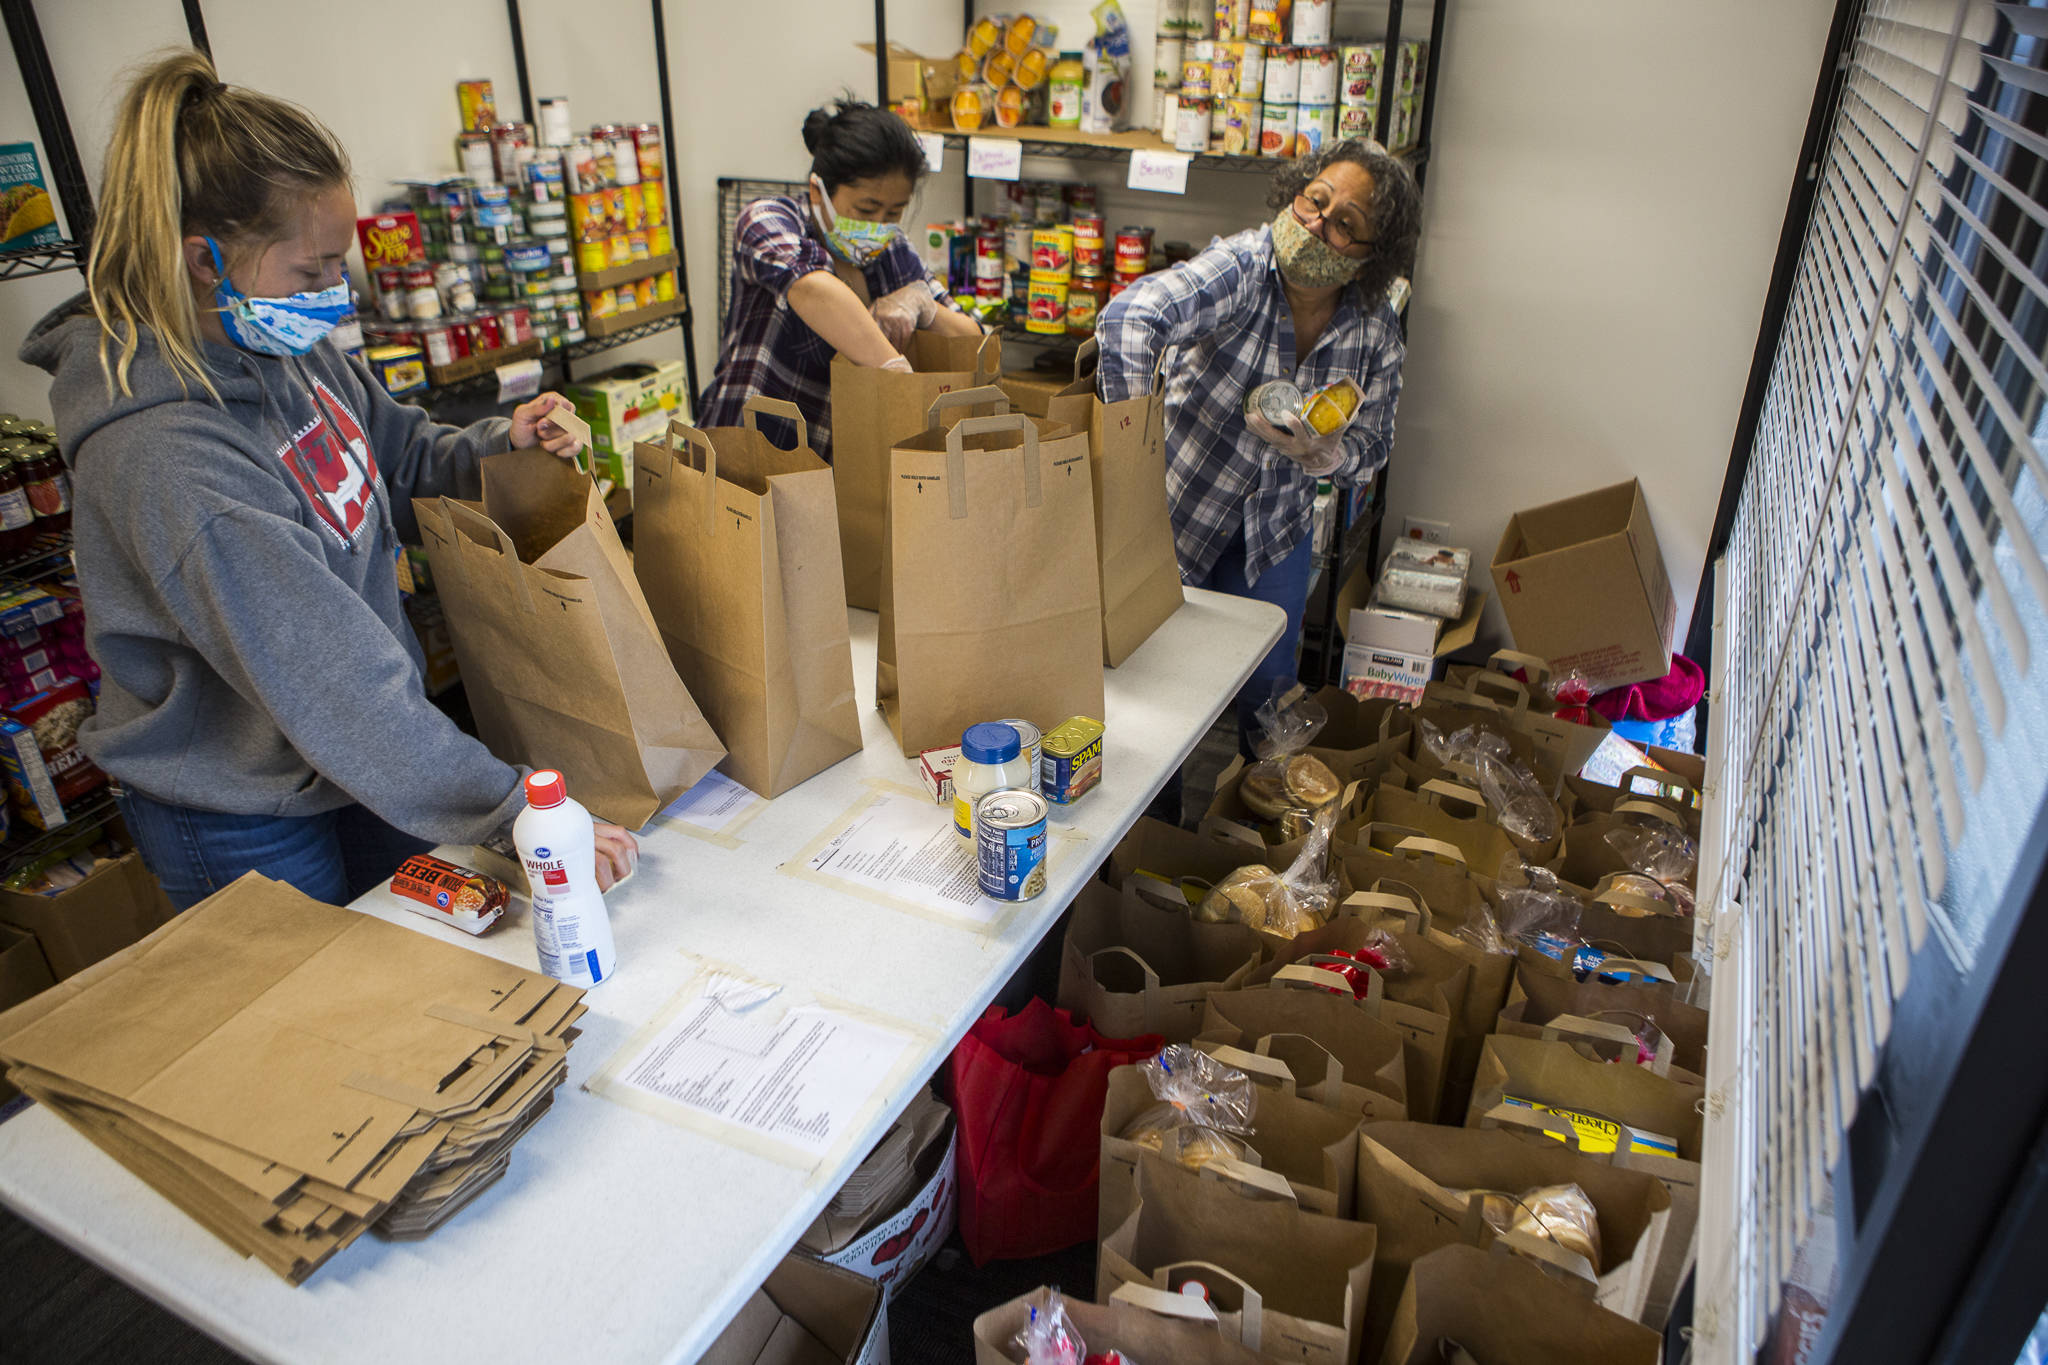 Taylor Eines (left), Akari Takayama (center) and Marilyn Robles (right) put together food bags for people to pick up at The Village on April 21 in Everett. (Olivia Vanni / The Herald)